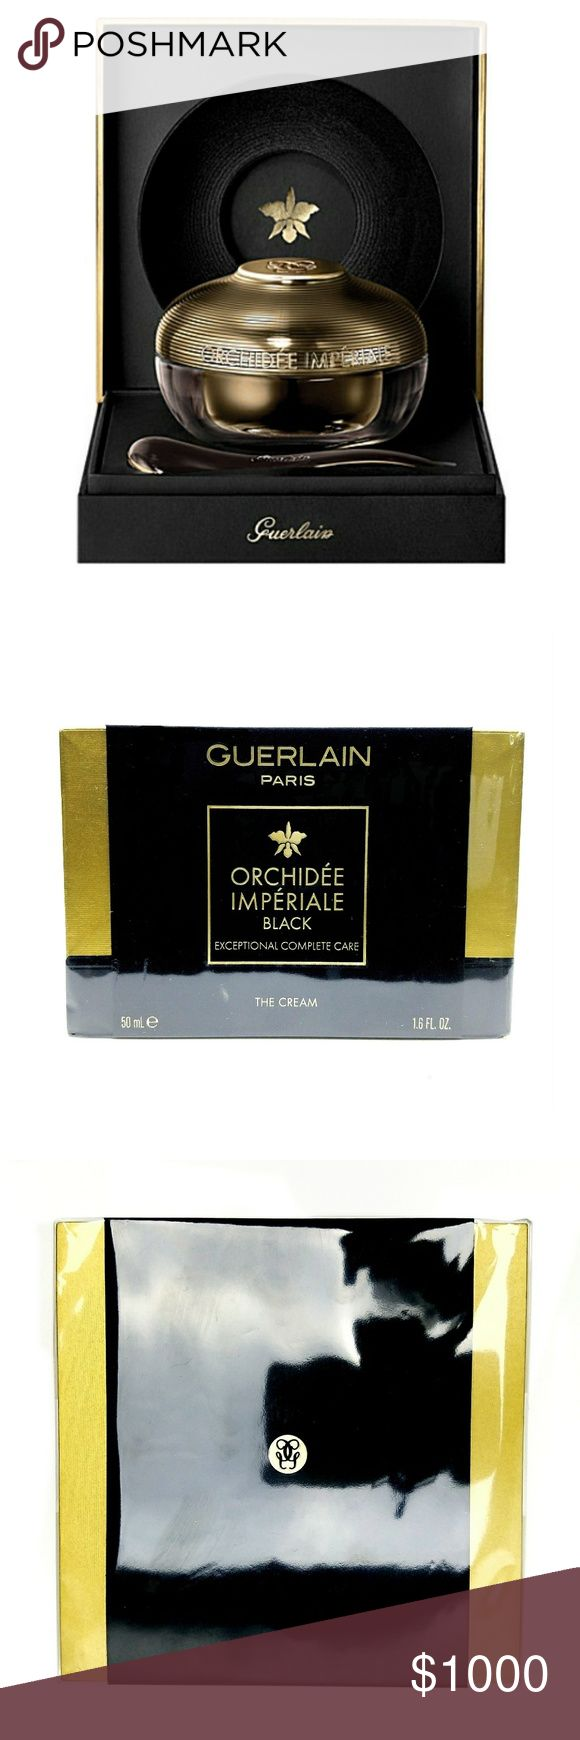 "🆕(NWOT) GUERLAIN Orchidee Imperiale Black Cream Here it is, the crème de la crème of skincare: GUERLAIN Orchidée Impériale Black - 'The Cream'. Touted as the, ""Ultimate talisman of youth"", Guerlain's Orchidée Impériale Black Cream improves on their original Orchidée Impériale  formula & is the result of 15 years of research. Containing rare black orchid from the Peruvian Andes, the cream protects the skin & rolls back the signs of aging: wrinkles fade, skin texture becomes refined & facial…"